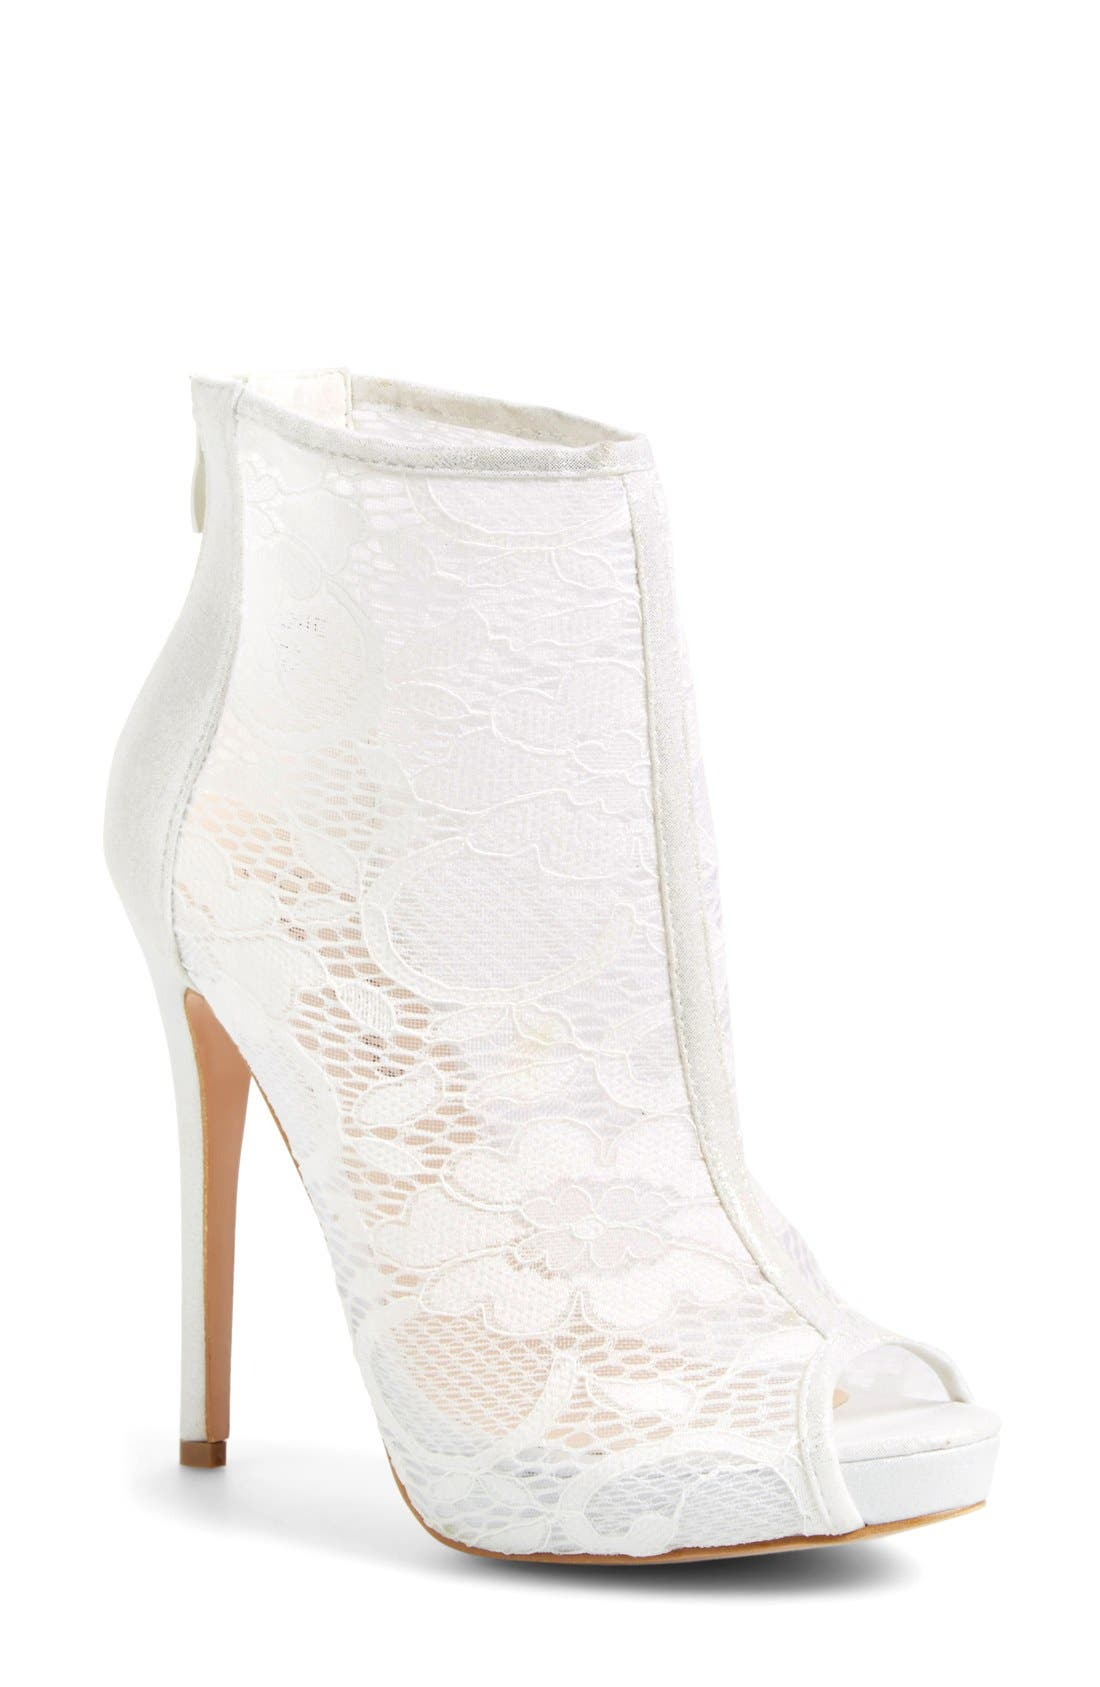 Alternate Image 1 Selected - Lauren Lorraine 'Jeanie' Lace Open Toe Bootie (Women)